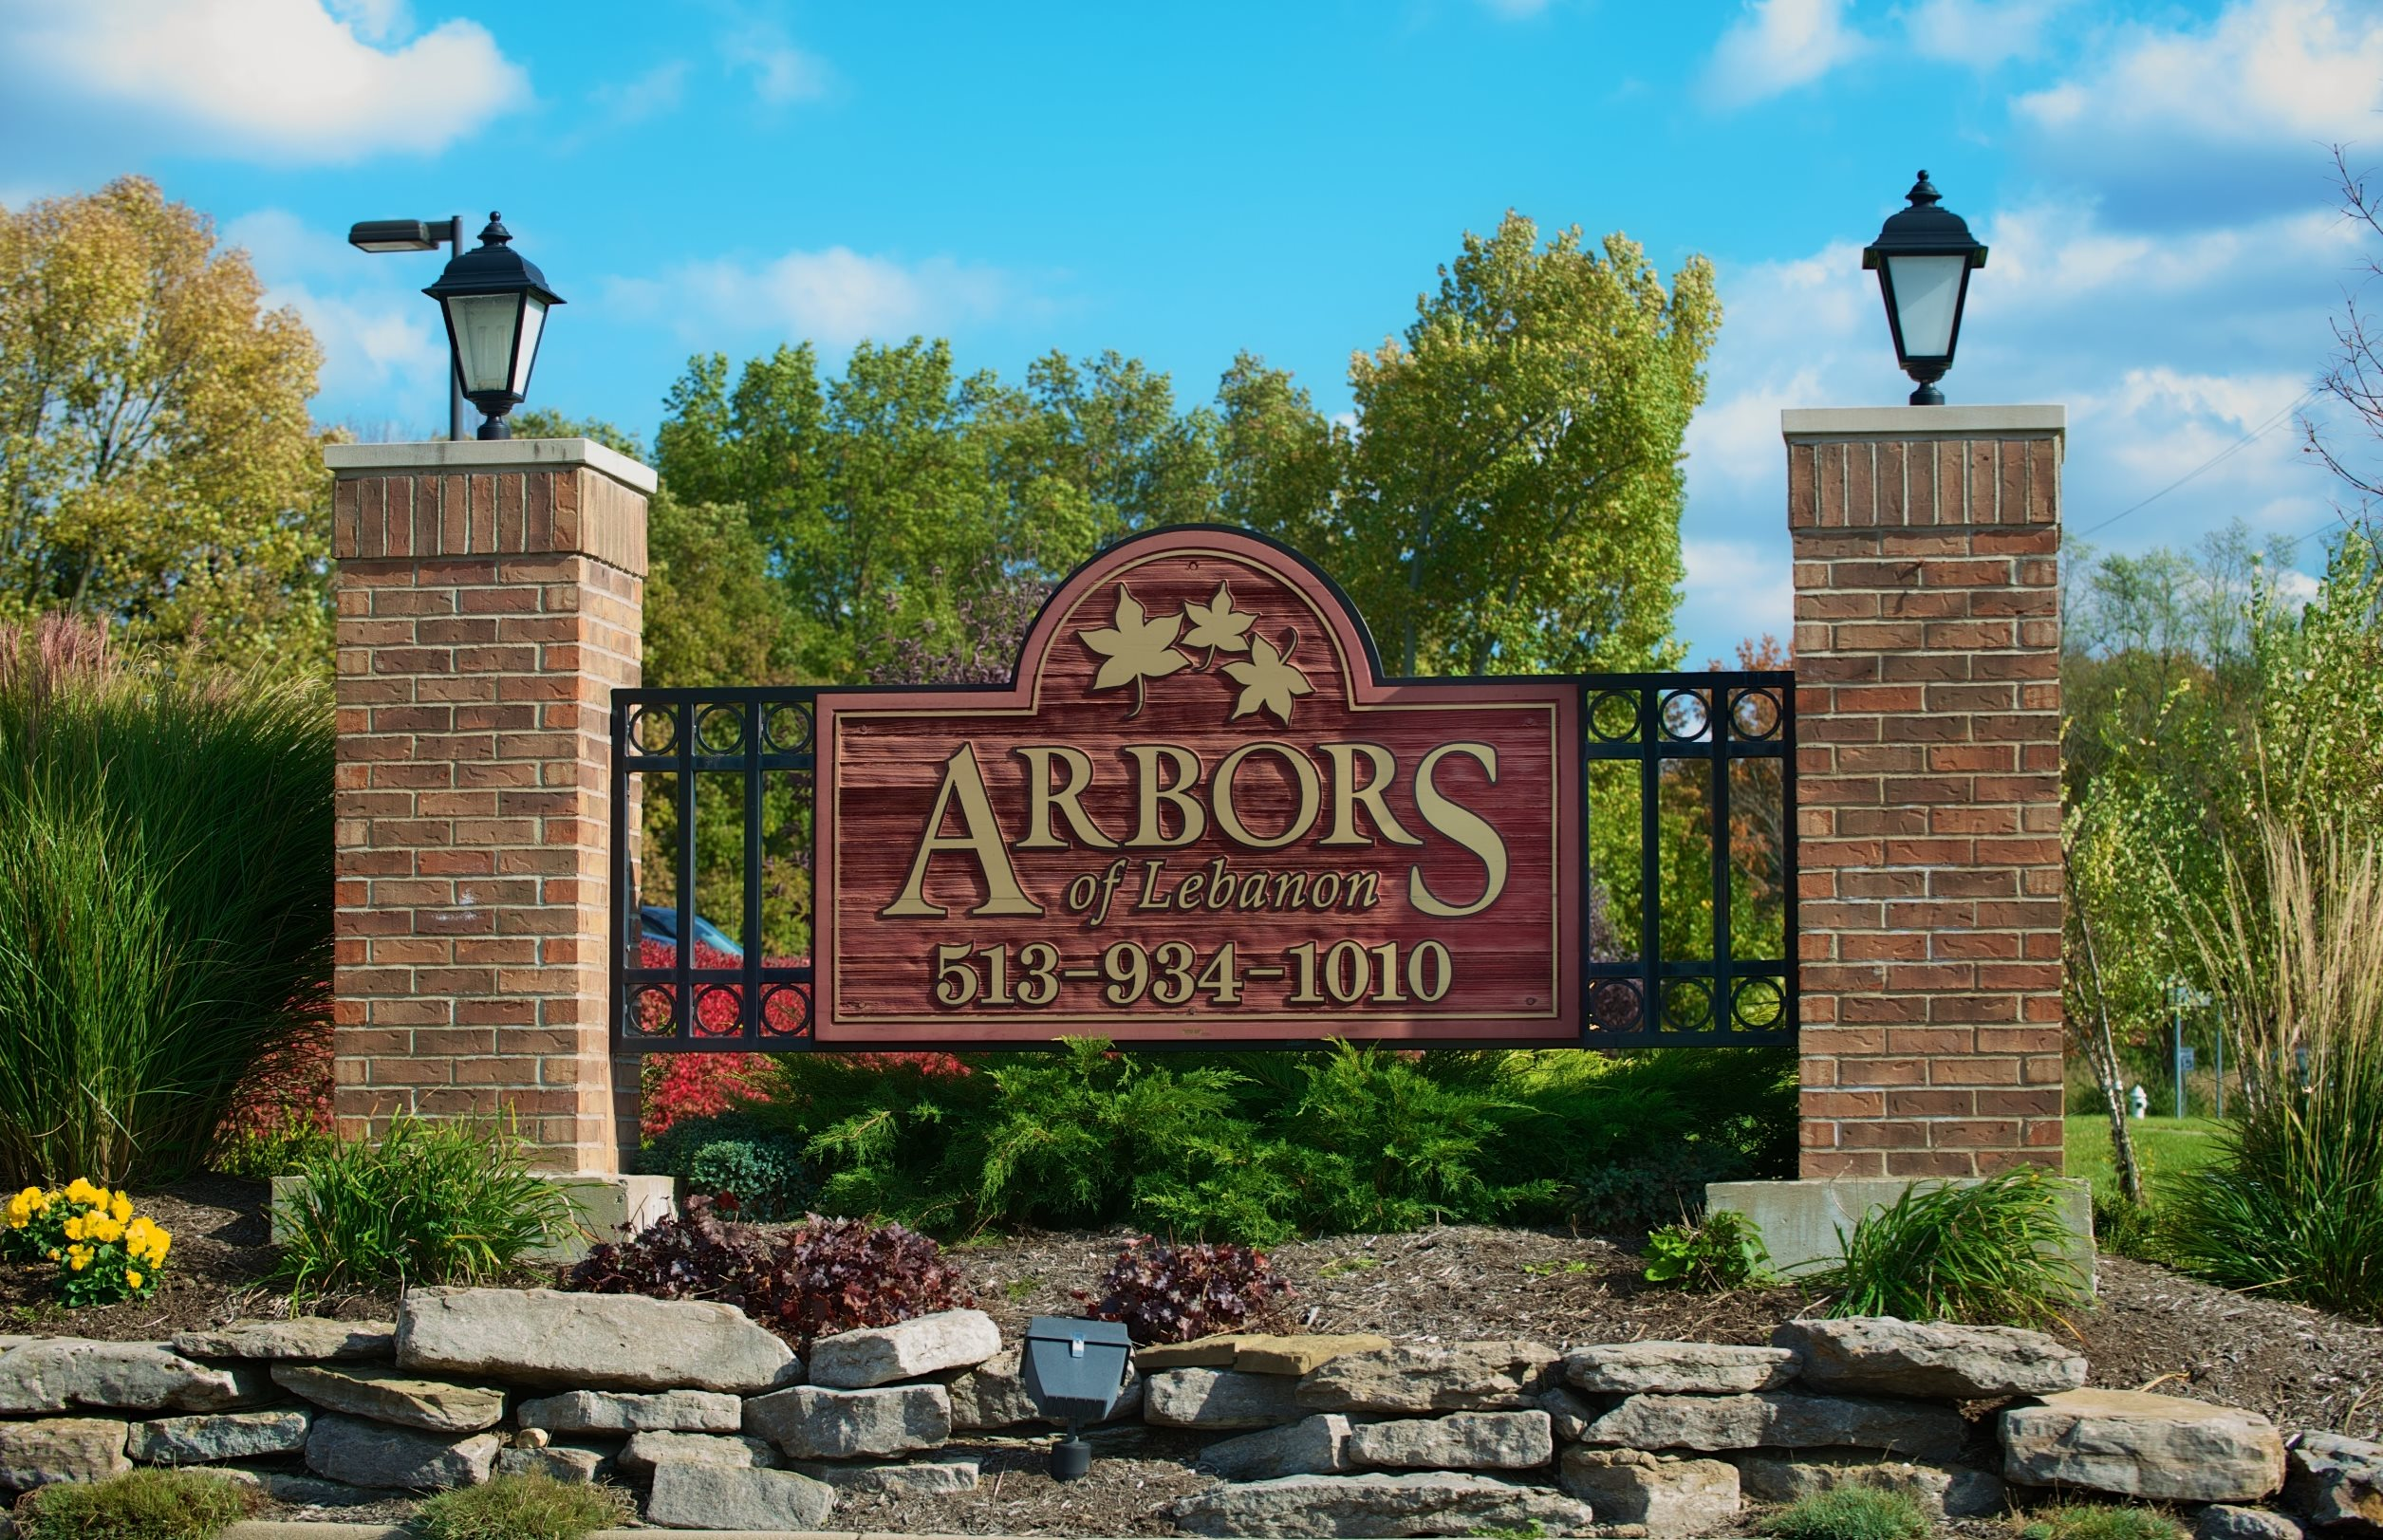 Lebanon, OH Apartment Photos, Videos, Plans | Arbors of ...